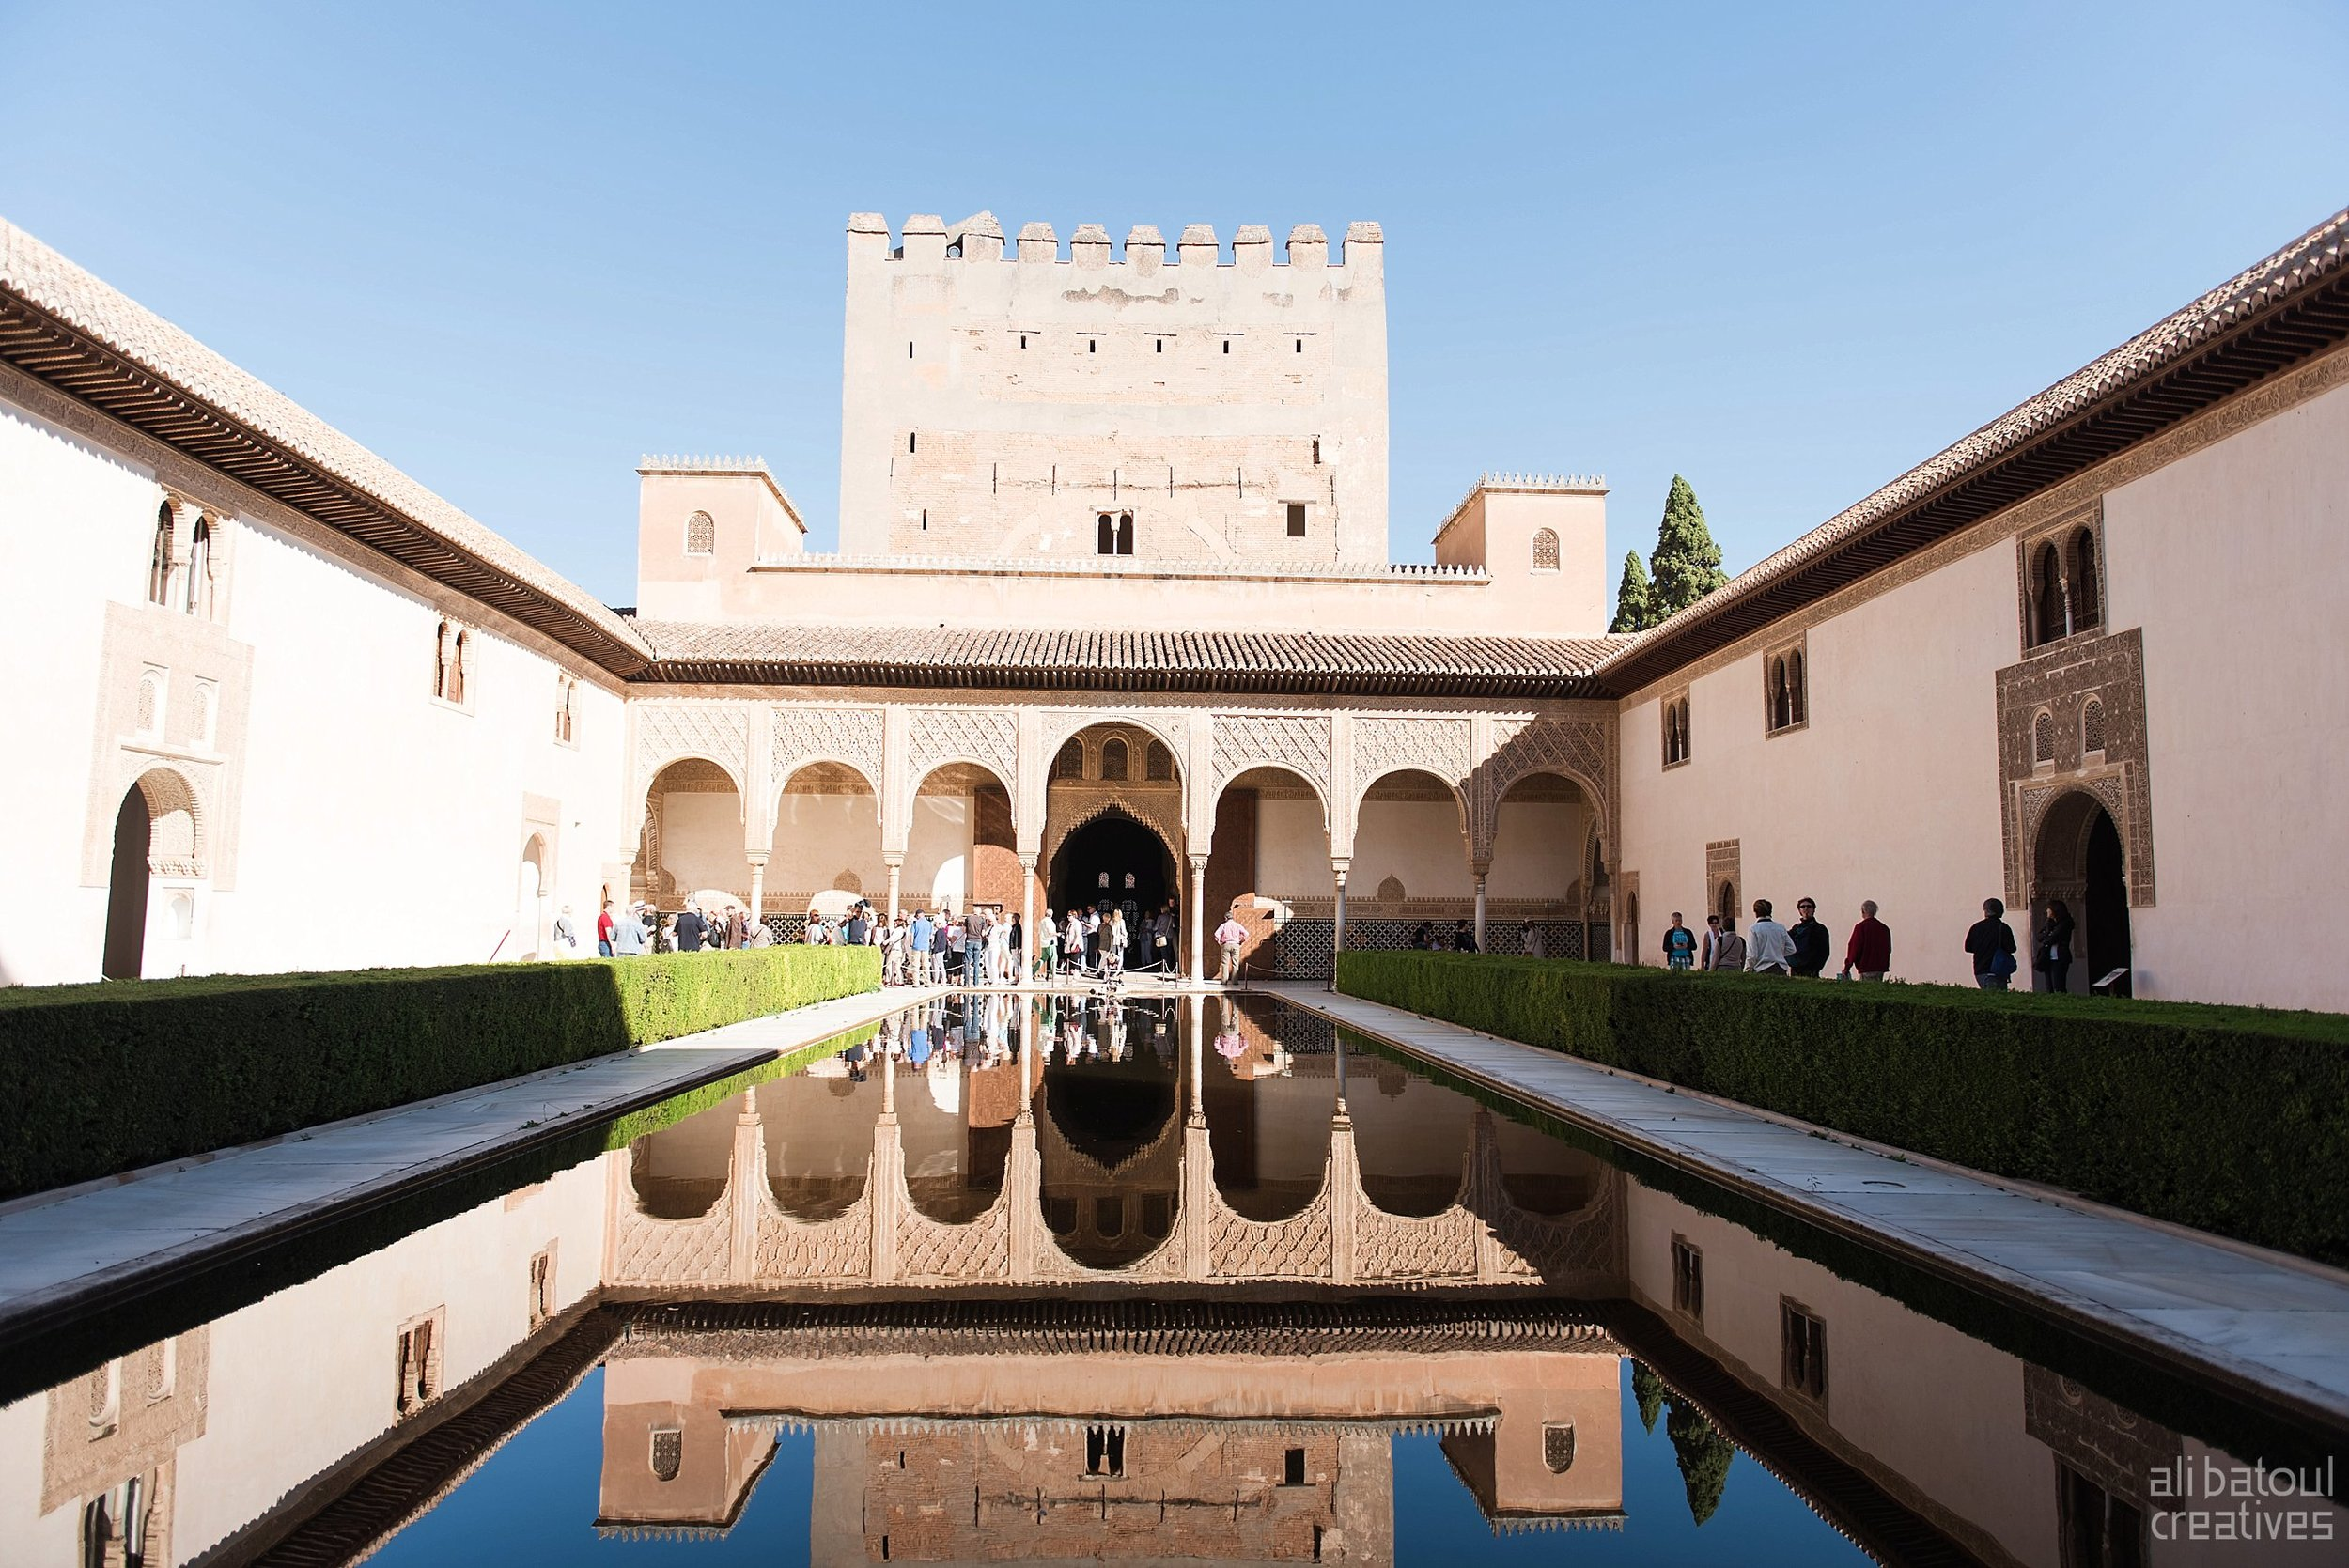 The architectural highlight of Granada are the palaces inside alhambra. The arabic inscriptions and geometric shapes and patterns were insanely beautiful and unmatched!